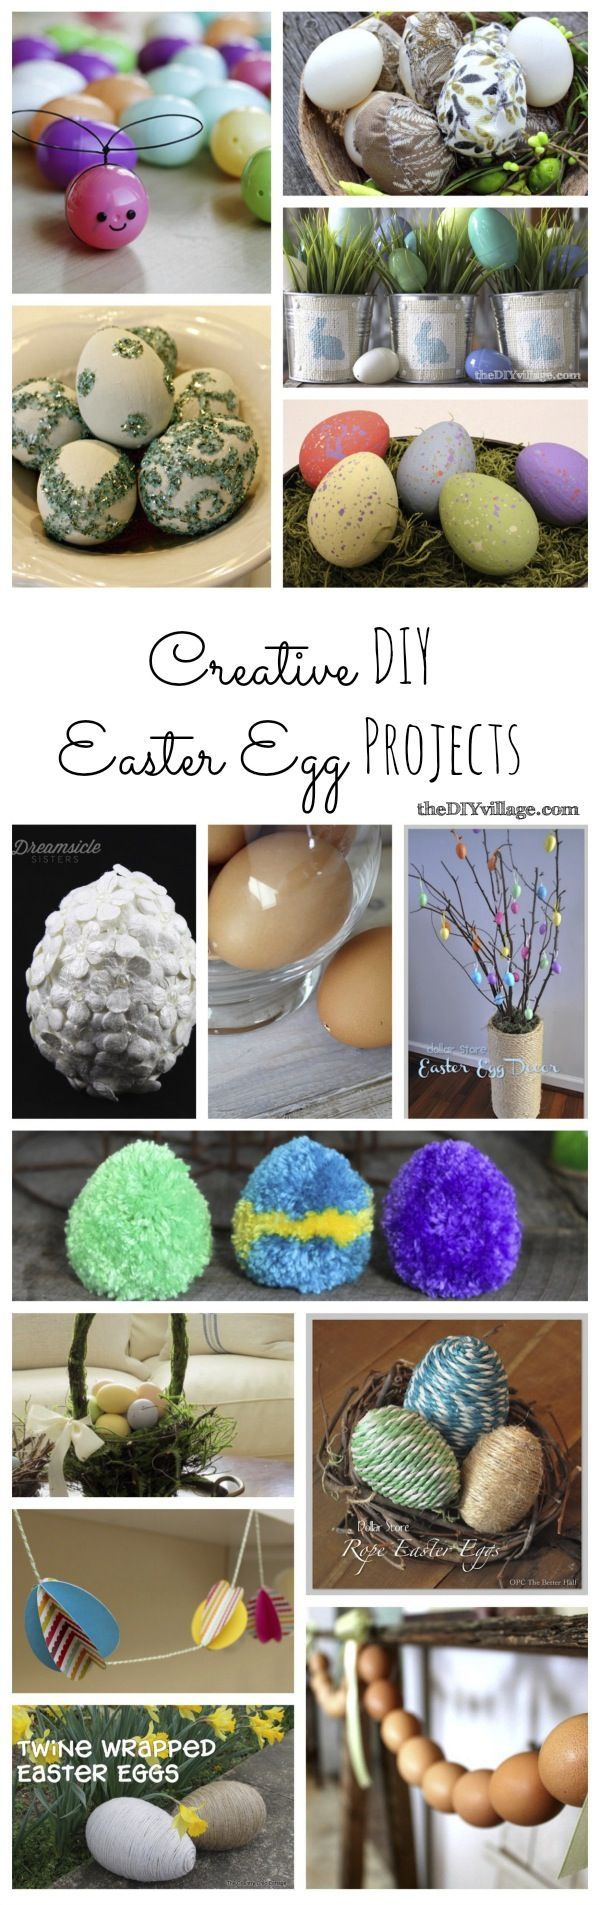 Creative DIY Easter Egg Projects for Spring!